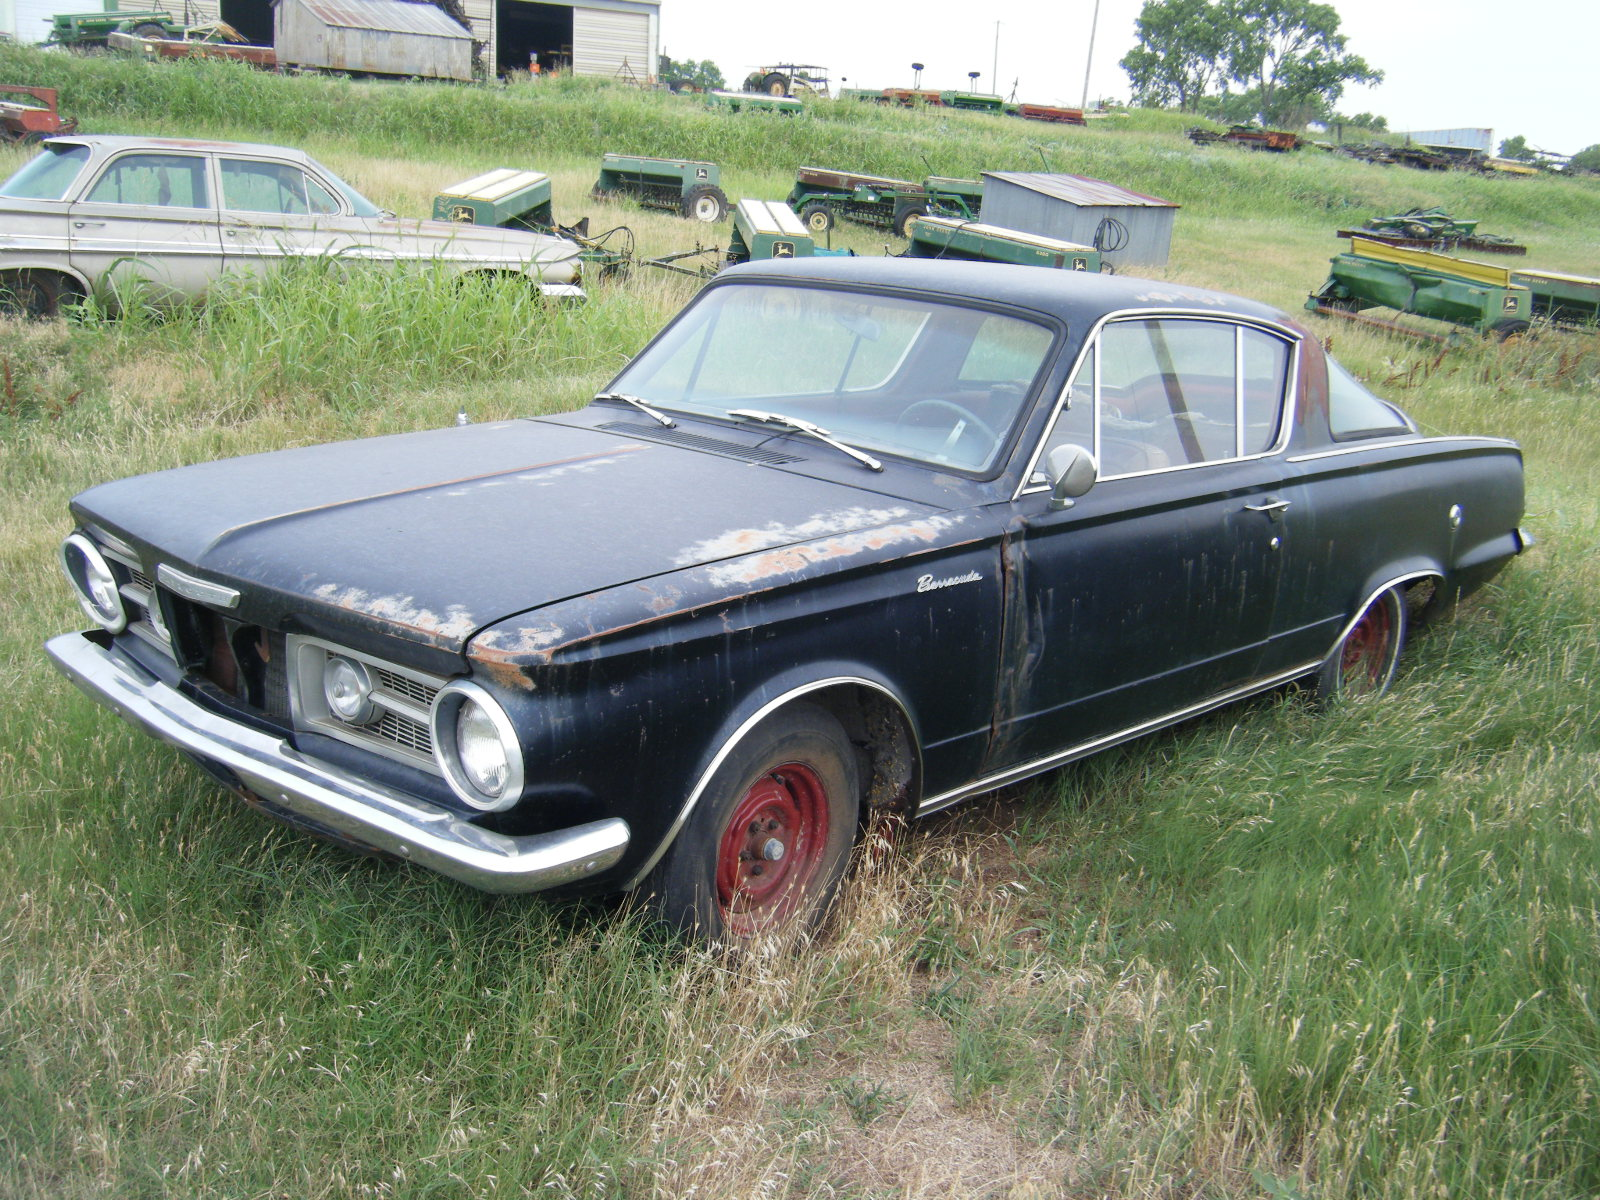 Salvage Cars For Sale | Share The Knownledge